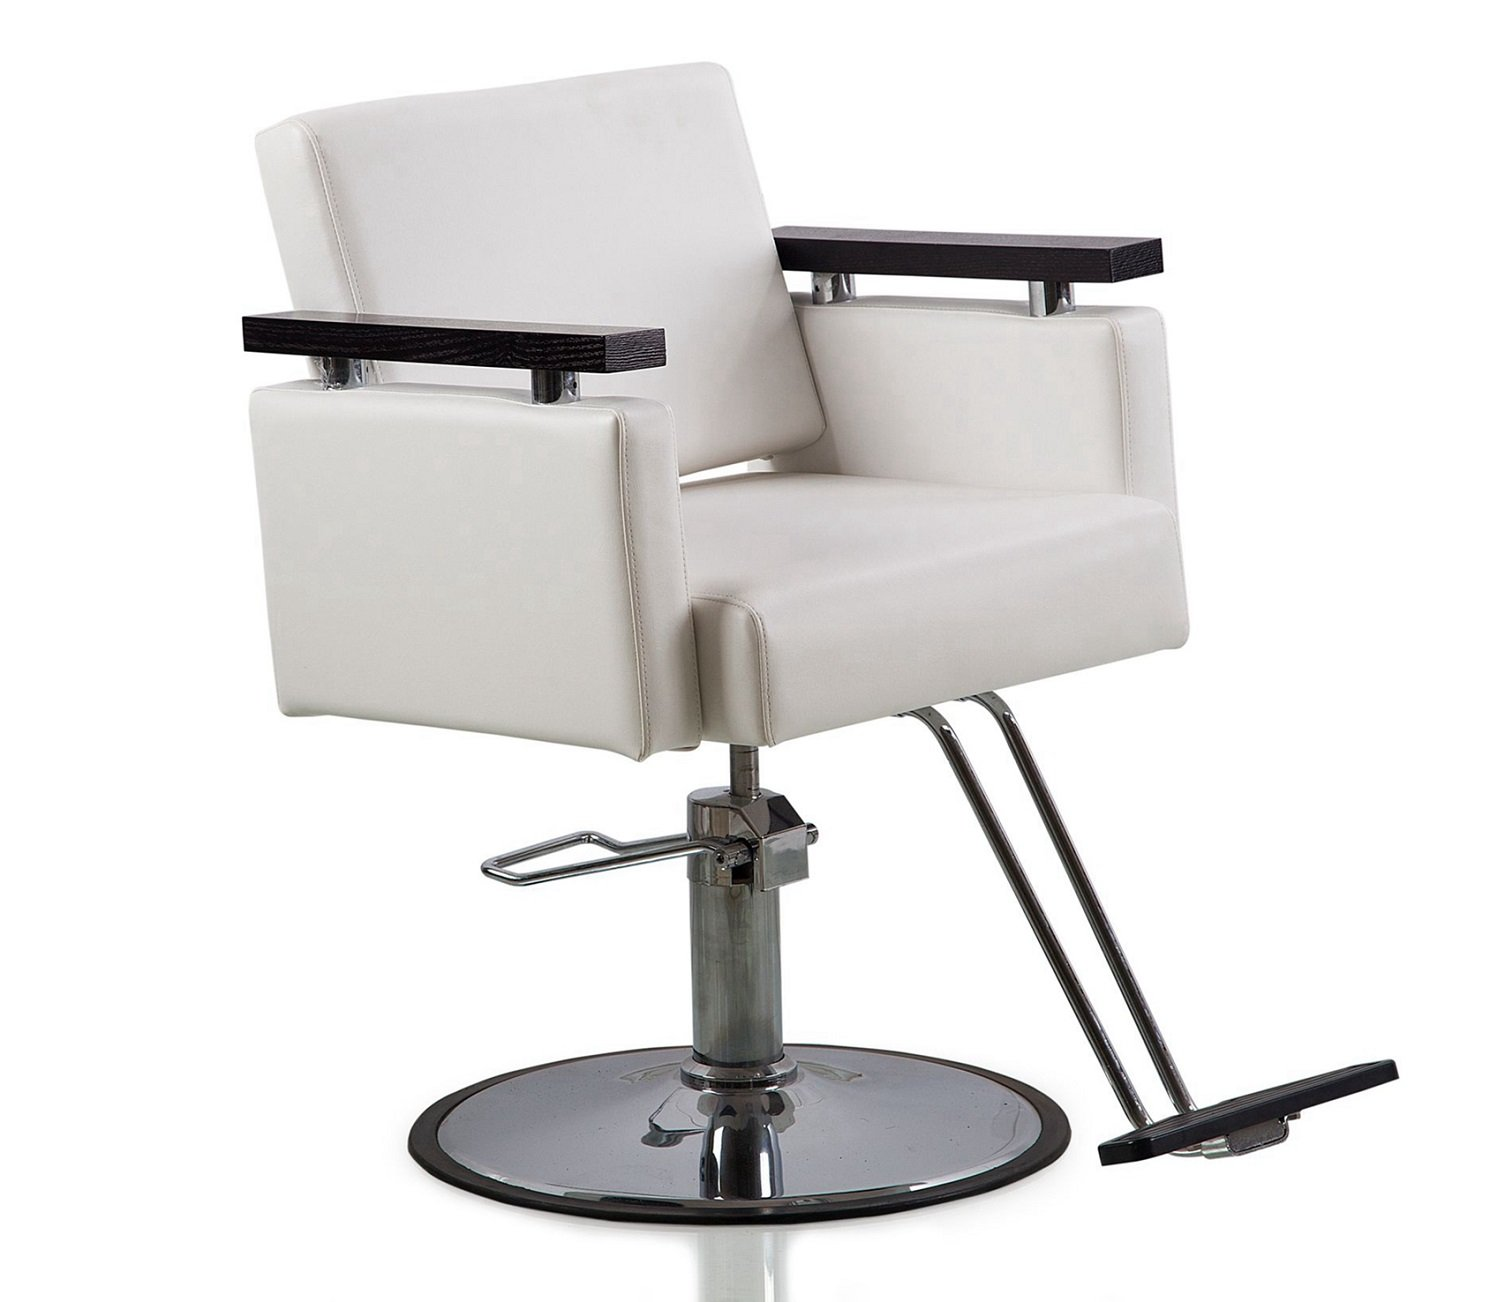 Danyel Beauty Professonal Hydraulic Barber Chair Salon Beauty Spa Hair Styling Chair (round base, white color) by Danyel Beauty